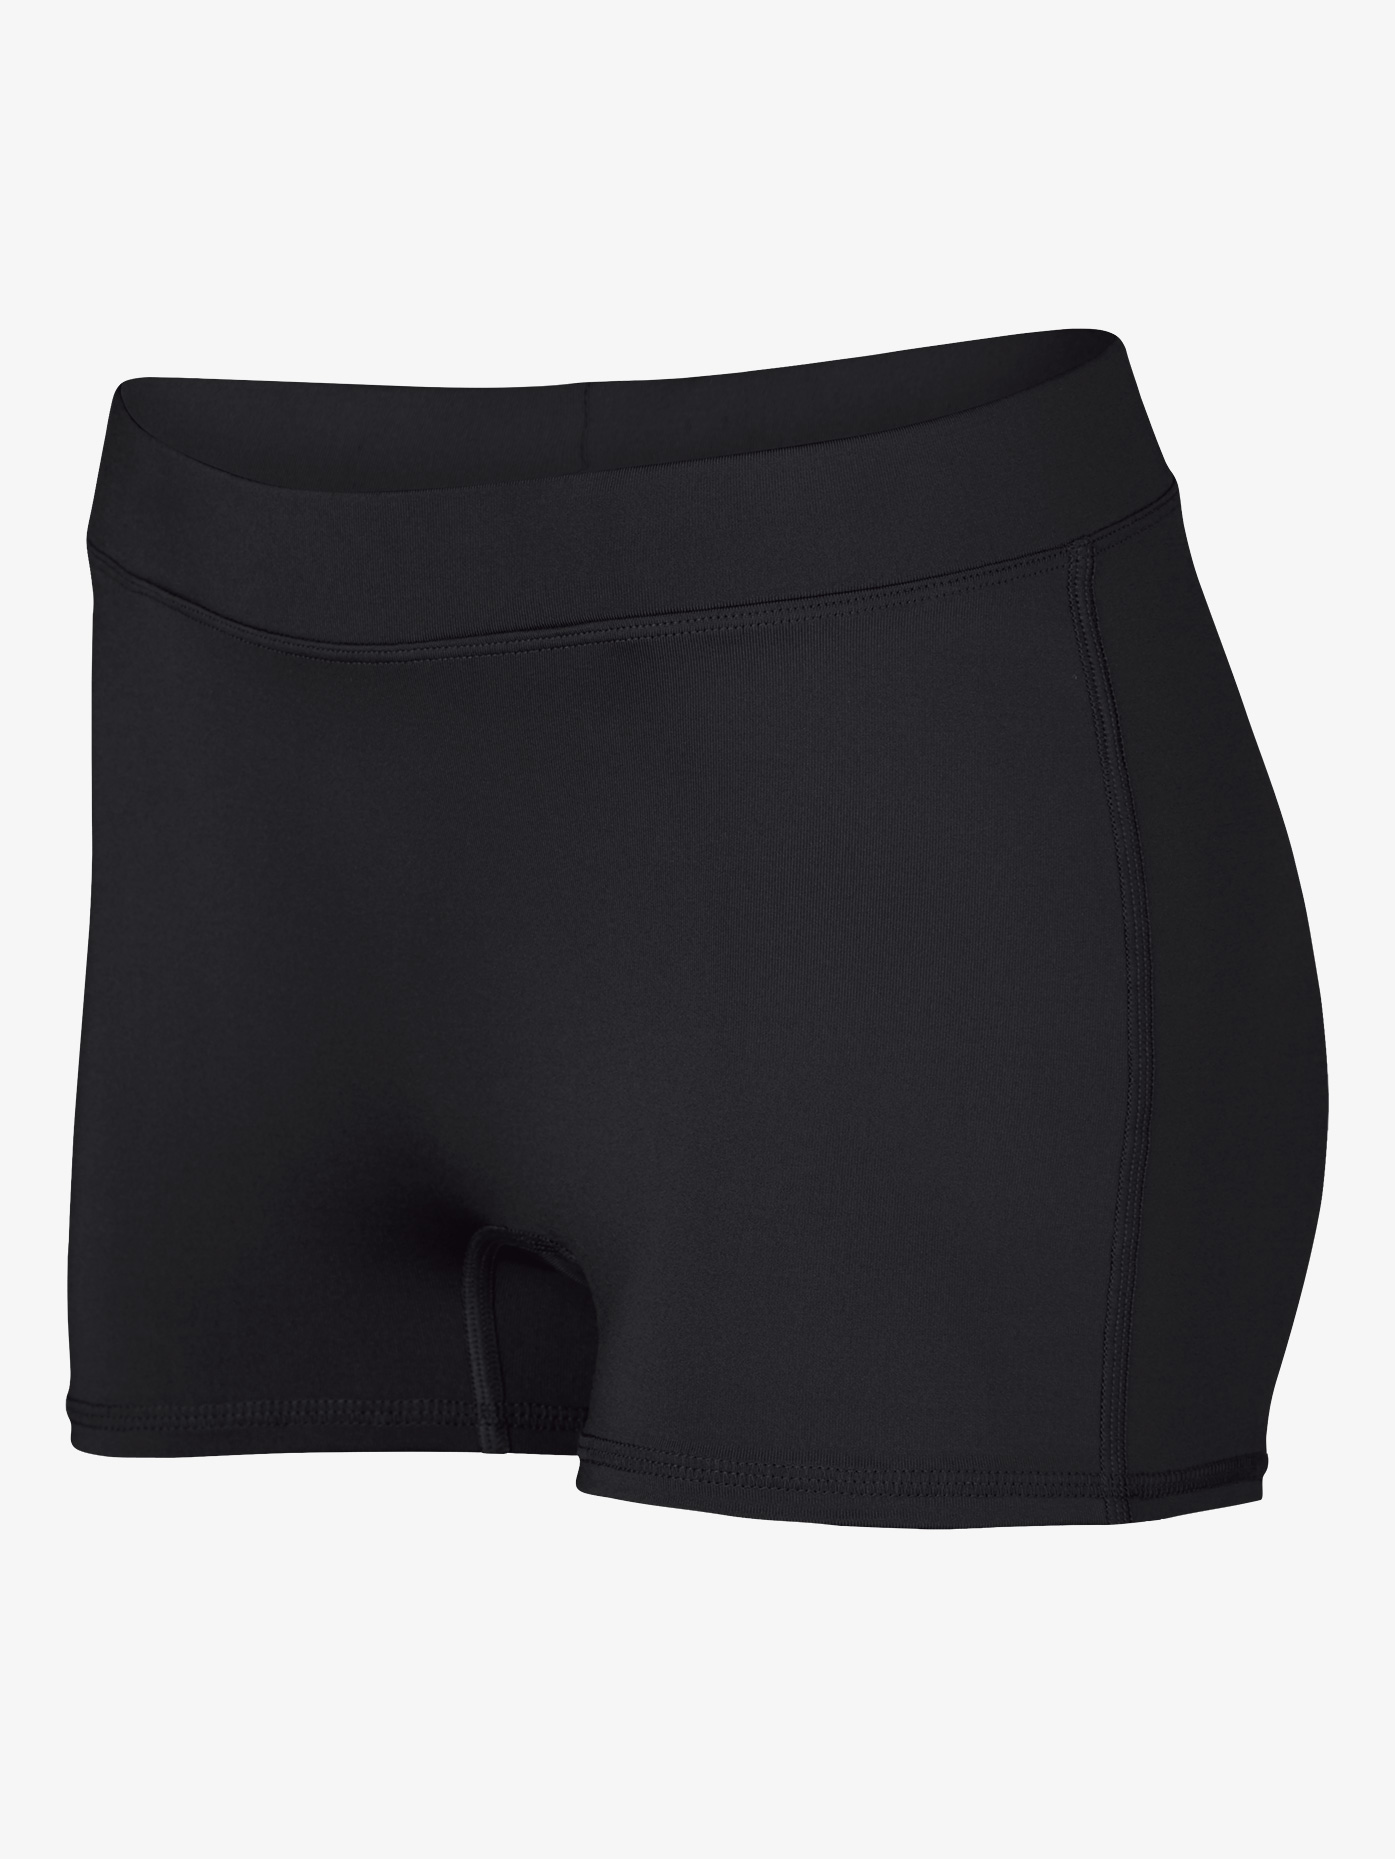 7ca688794c5 Womens Low Rise Dance Shorts - Style No AUG1232E. Loading zoom